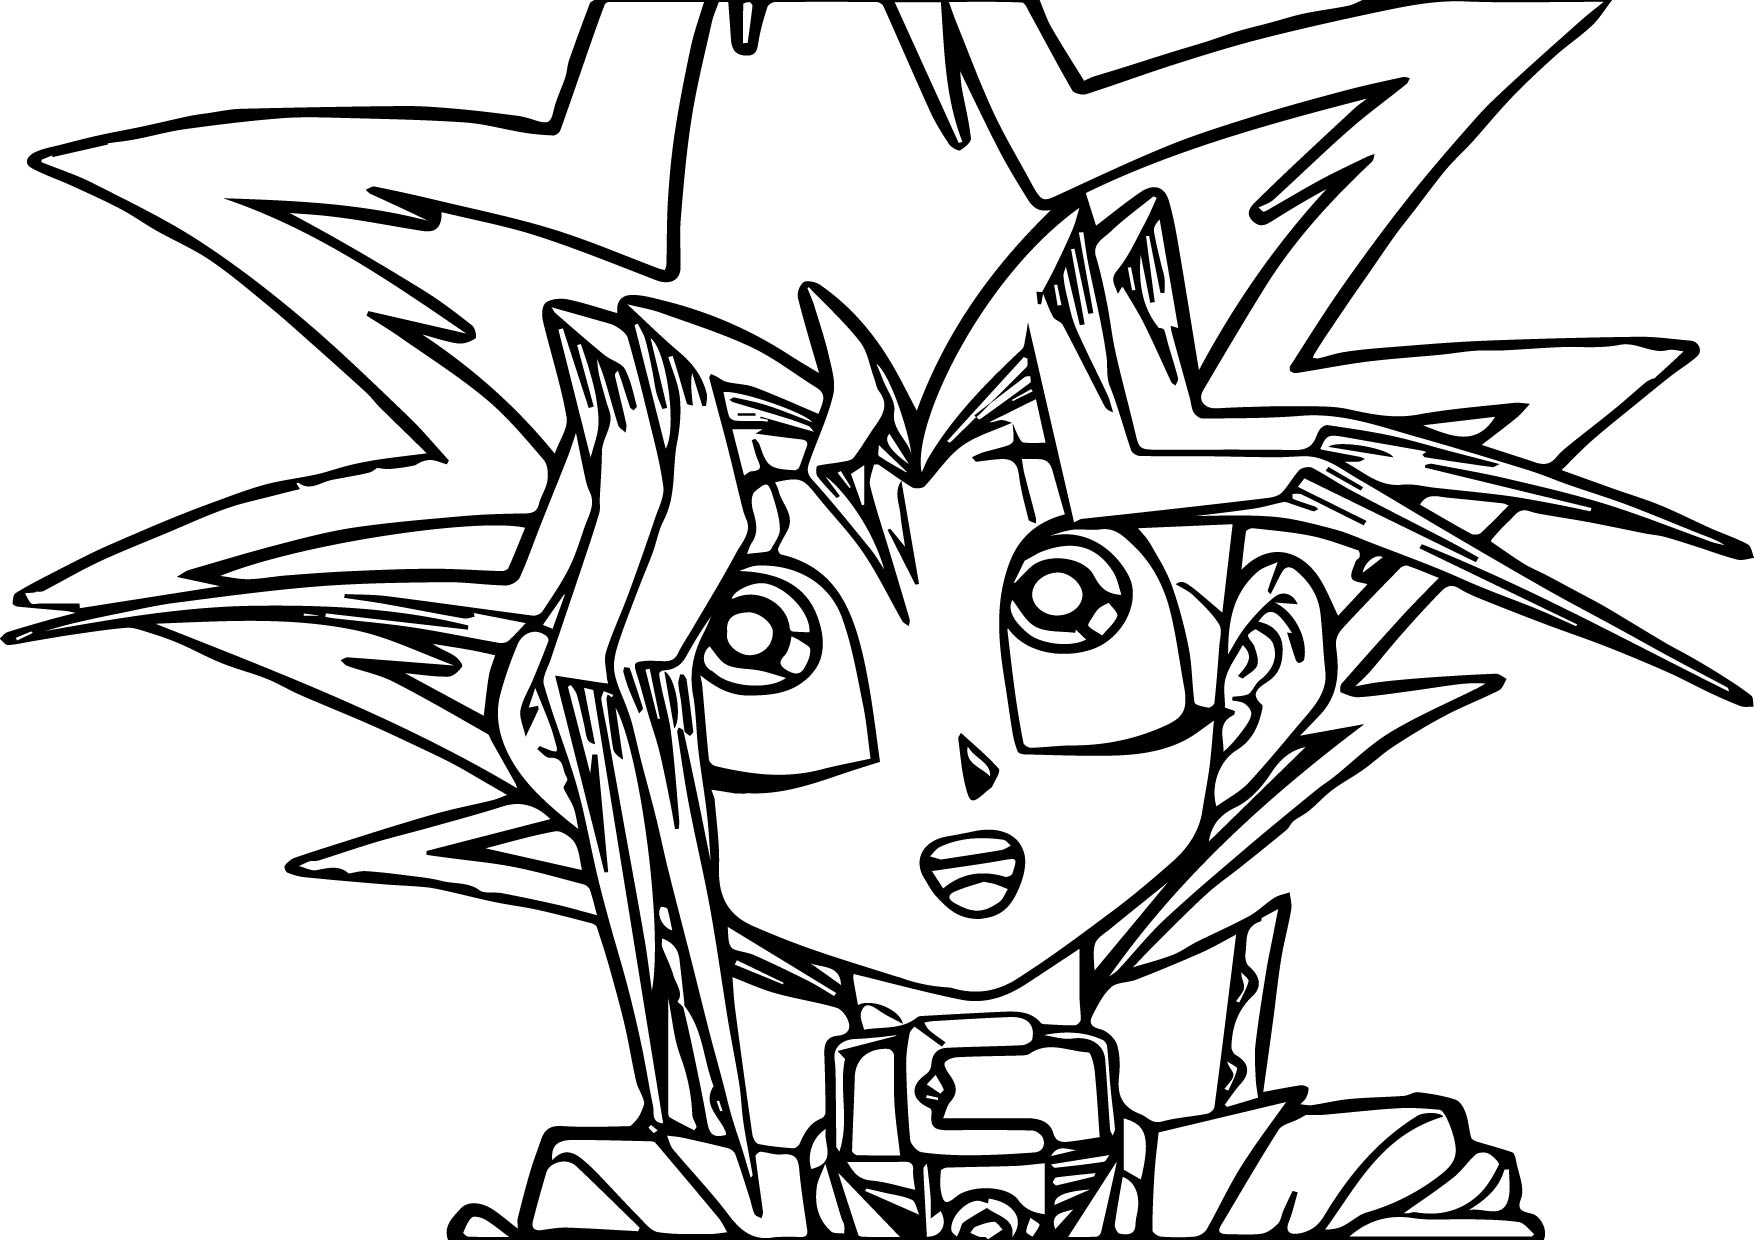 Yu Gi Oh Thinking Coloring Page